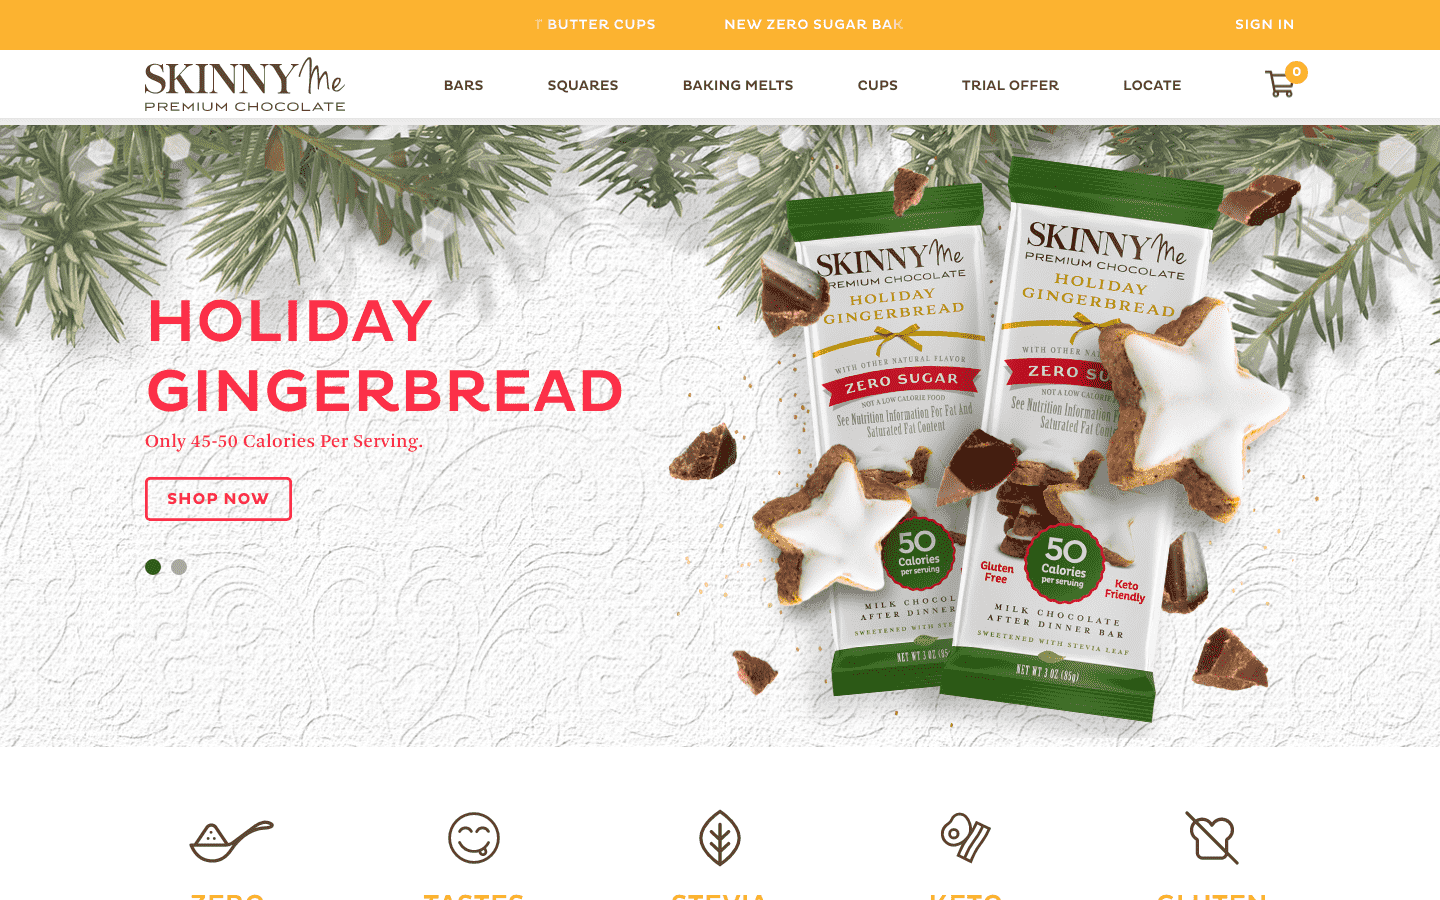 Skinny Me Chocolate reviews and complaints